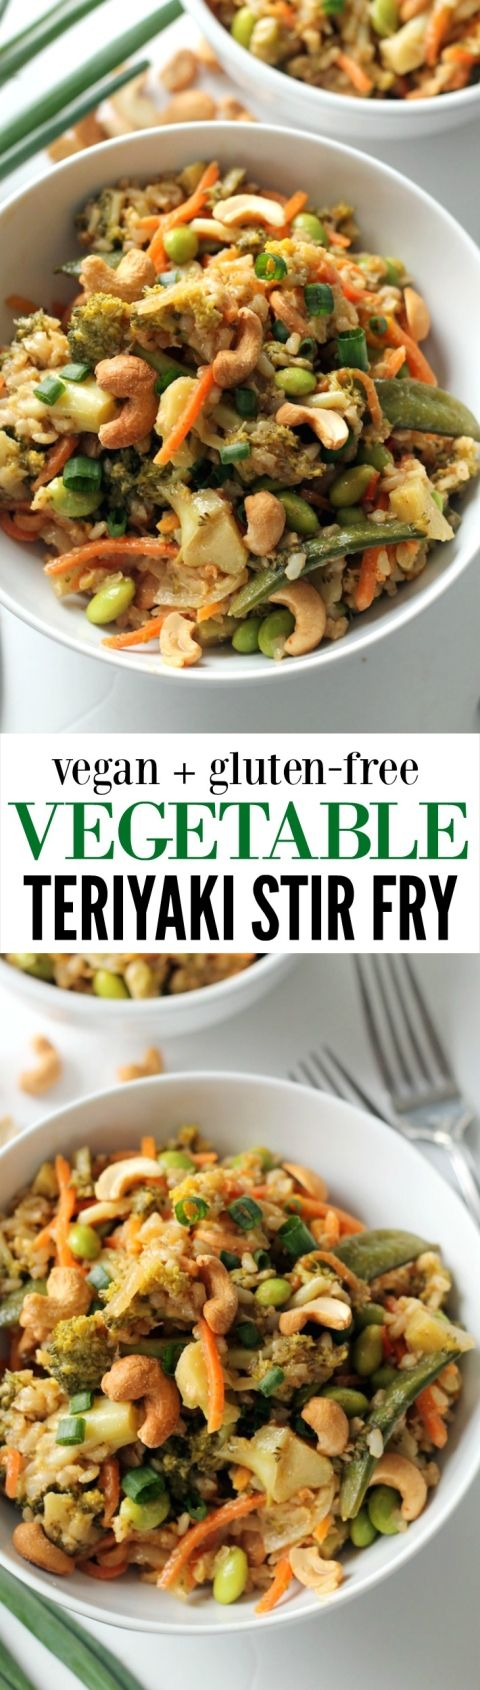 An easy stir fry packed with protein and flavor, perfect for a quick vegan and gluten-free dinner!